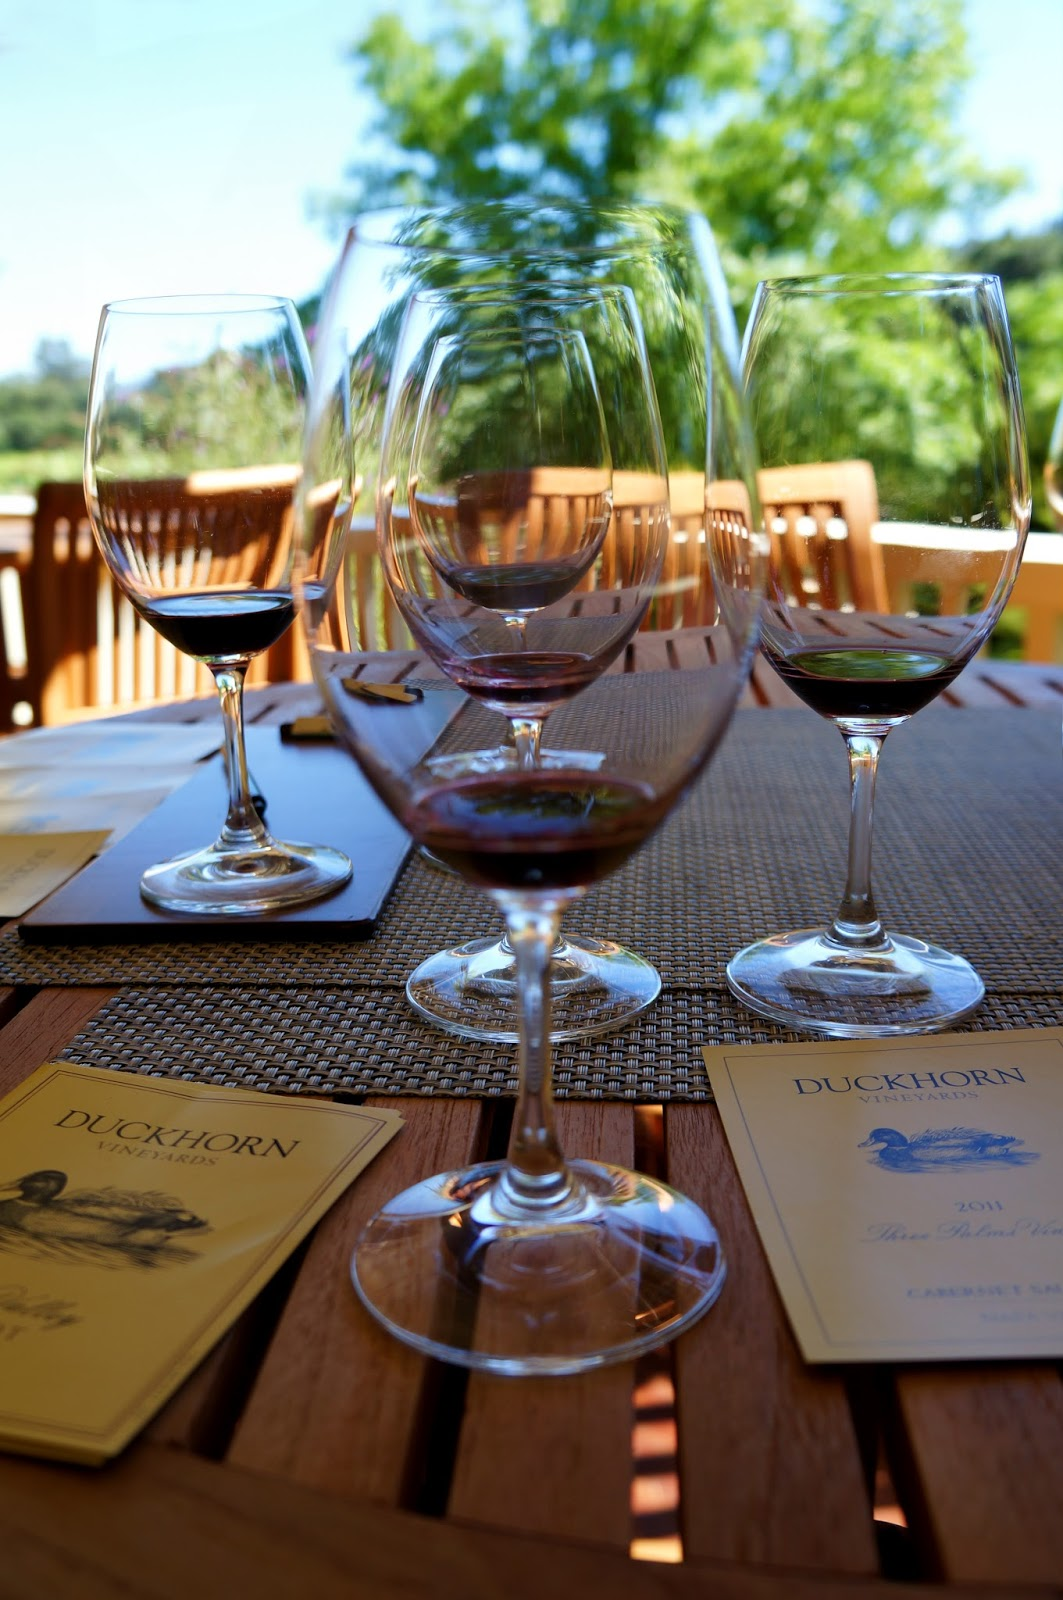 Duckhorn Vineyards wine tasting experience